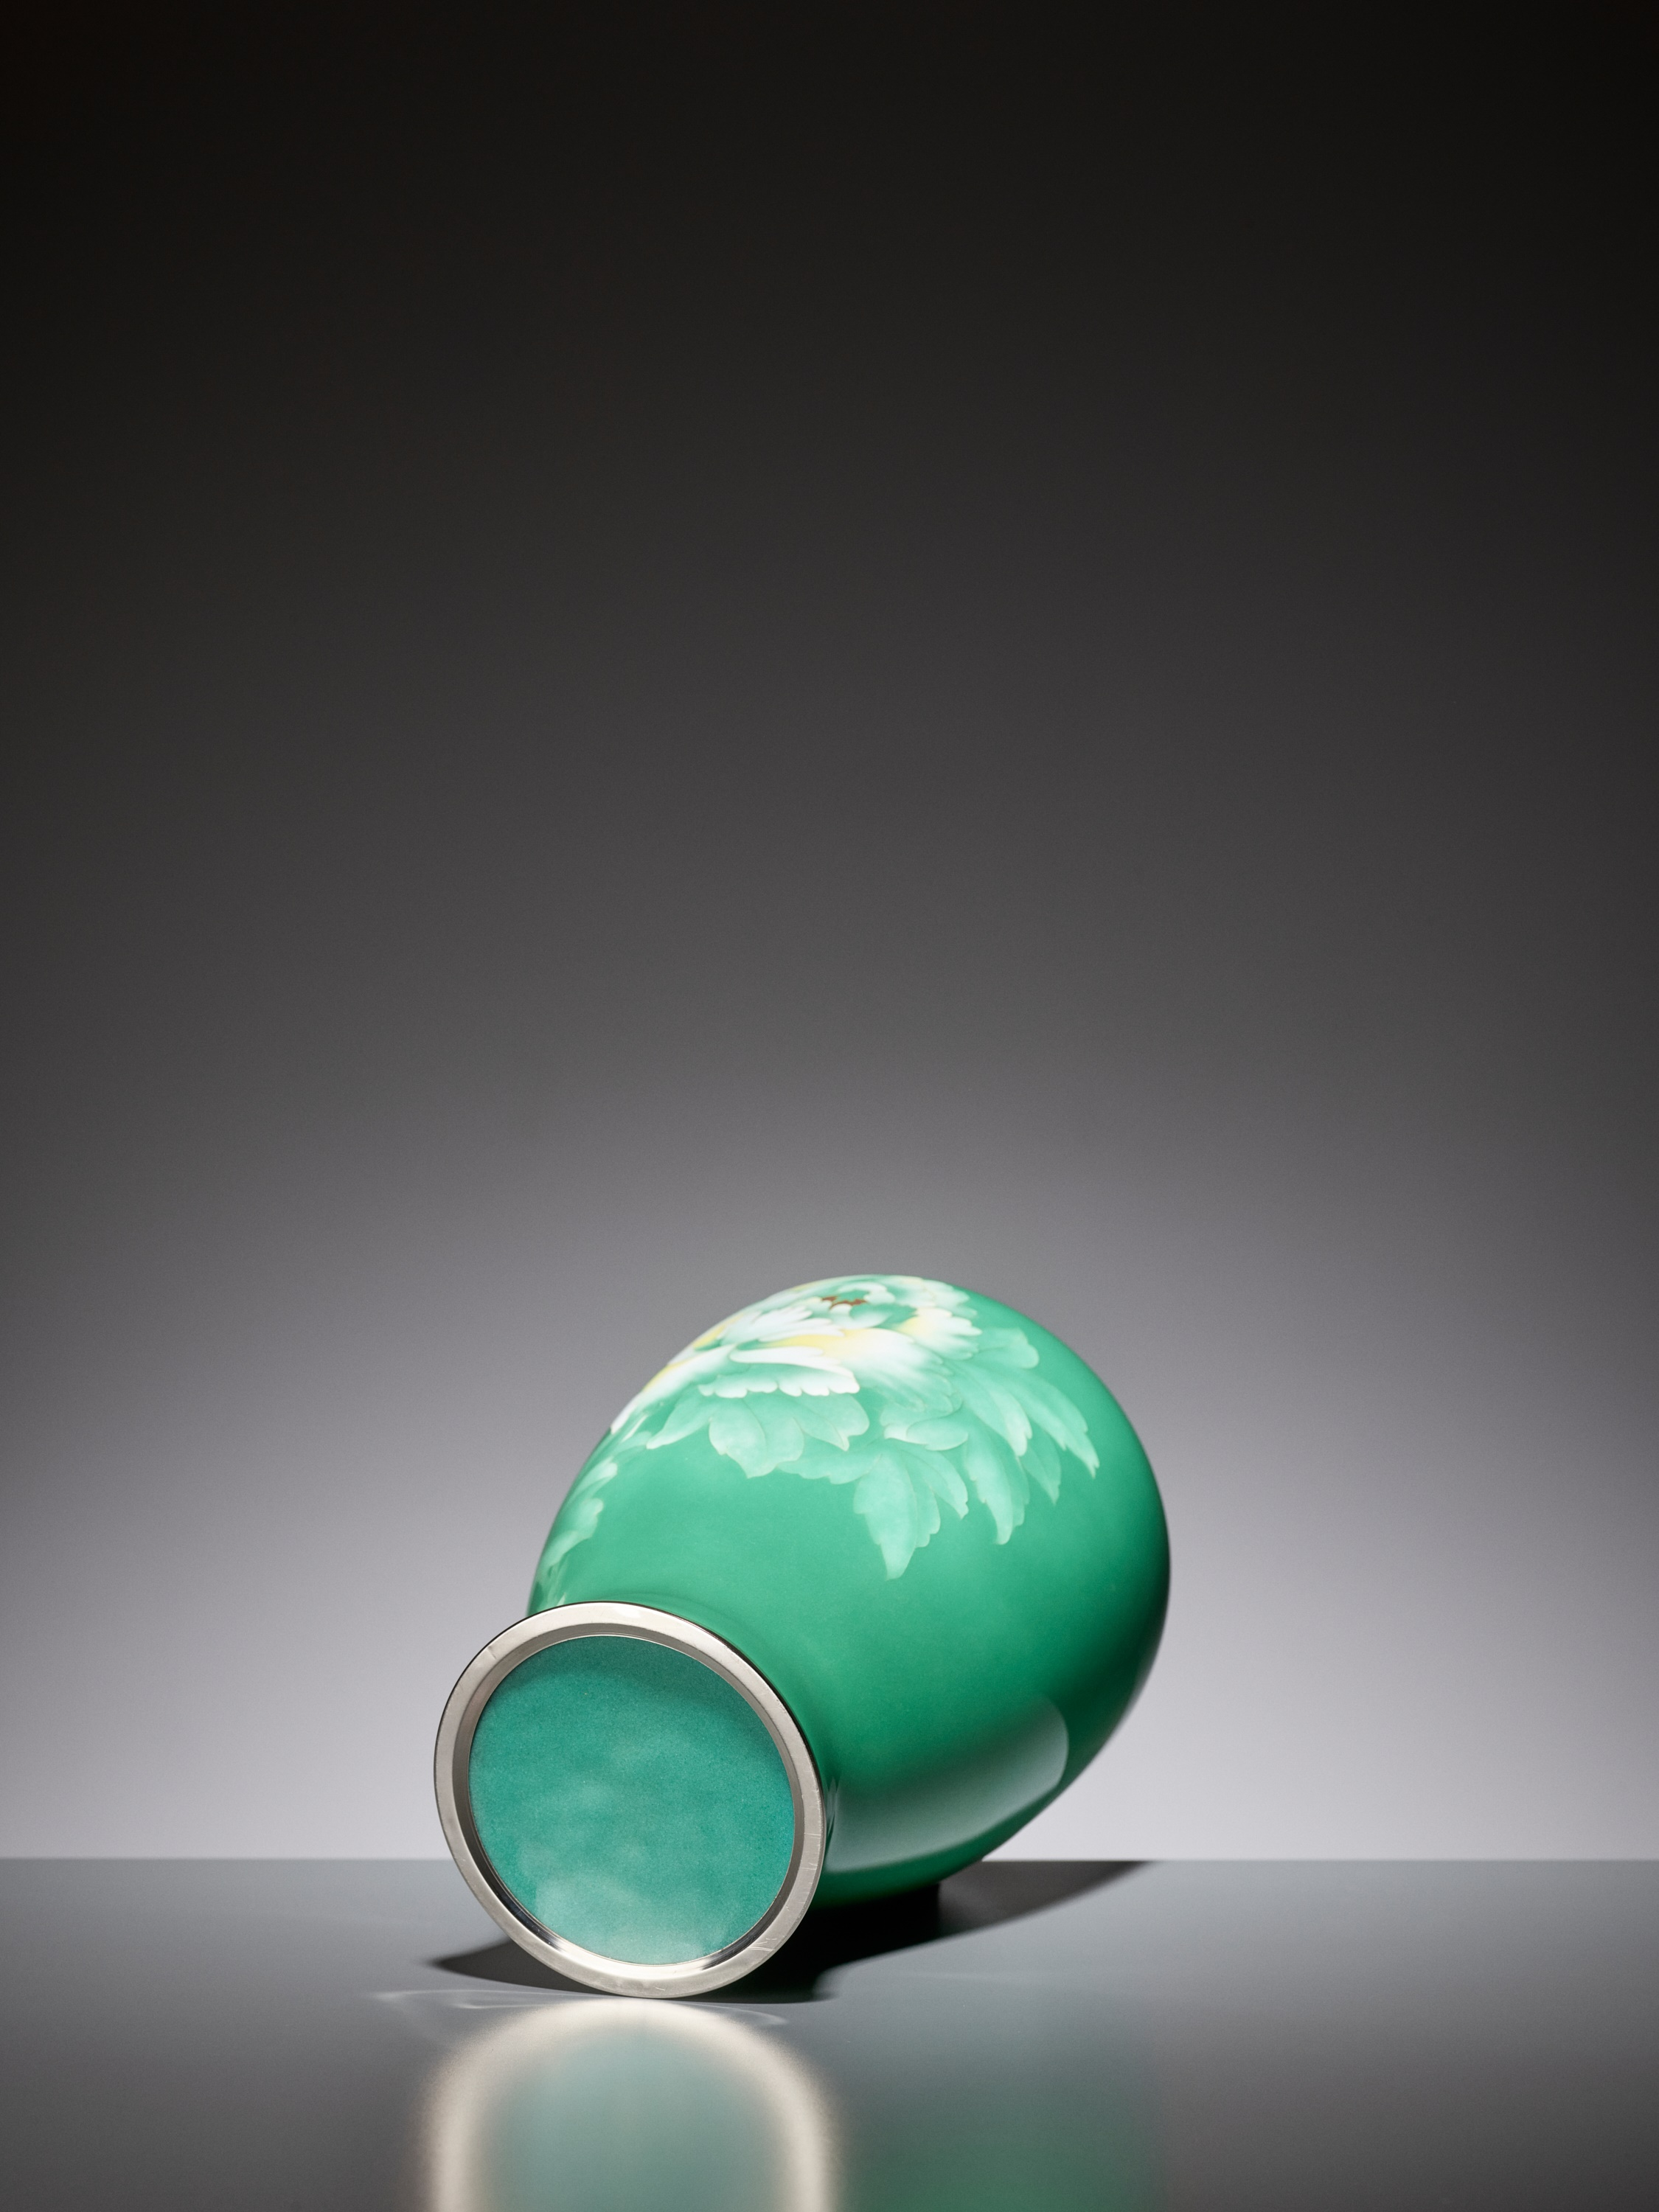 AN EMERALD GREEN CLOISONNE ENAMEL VASE WITH PEONY, ATTRIBUTED TO THE WORKSHOP OF ANDO JUBEI - Image 6 of 6